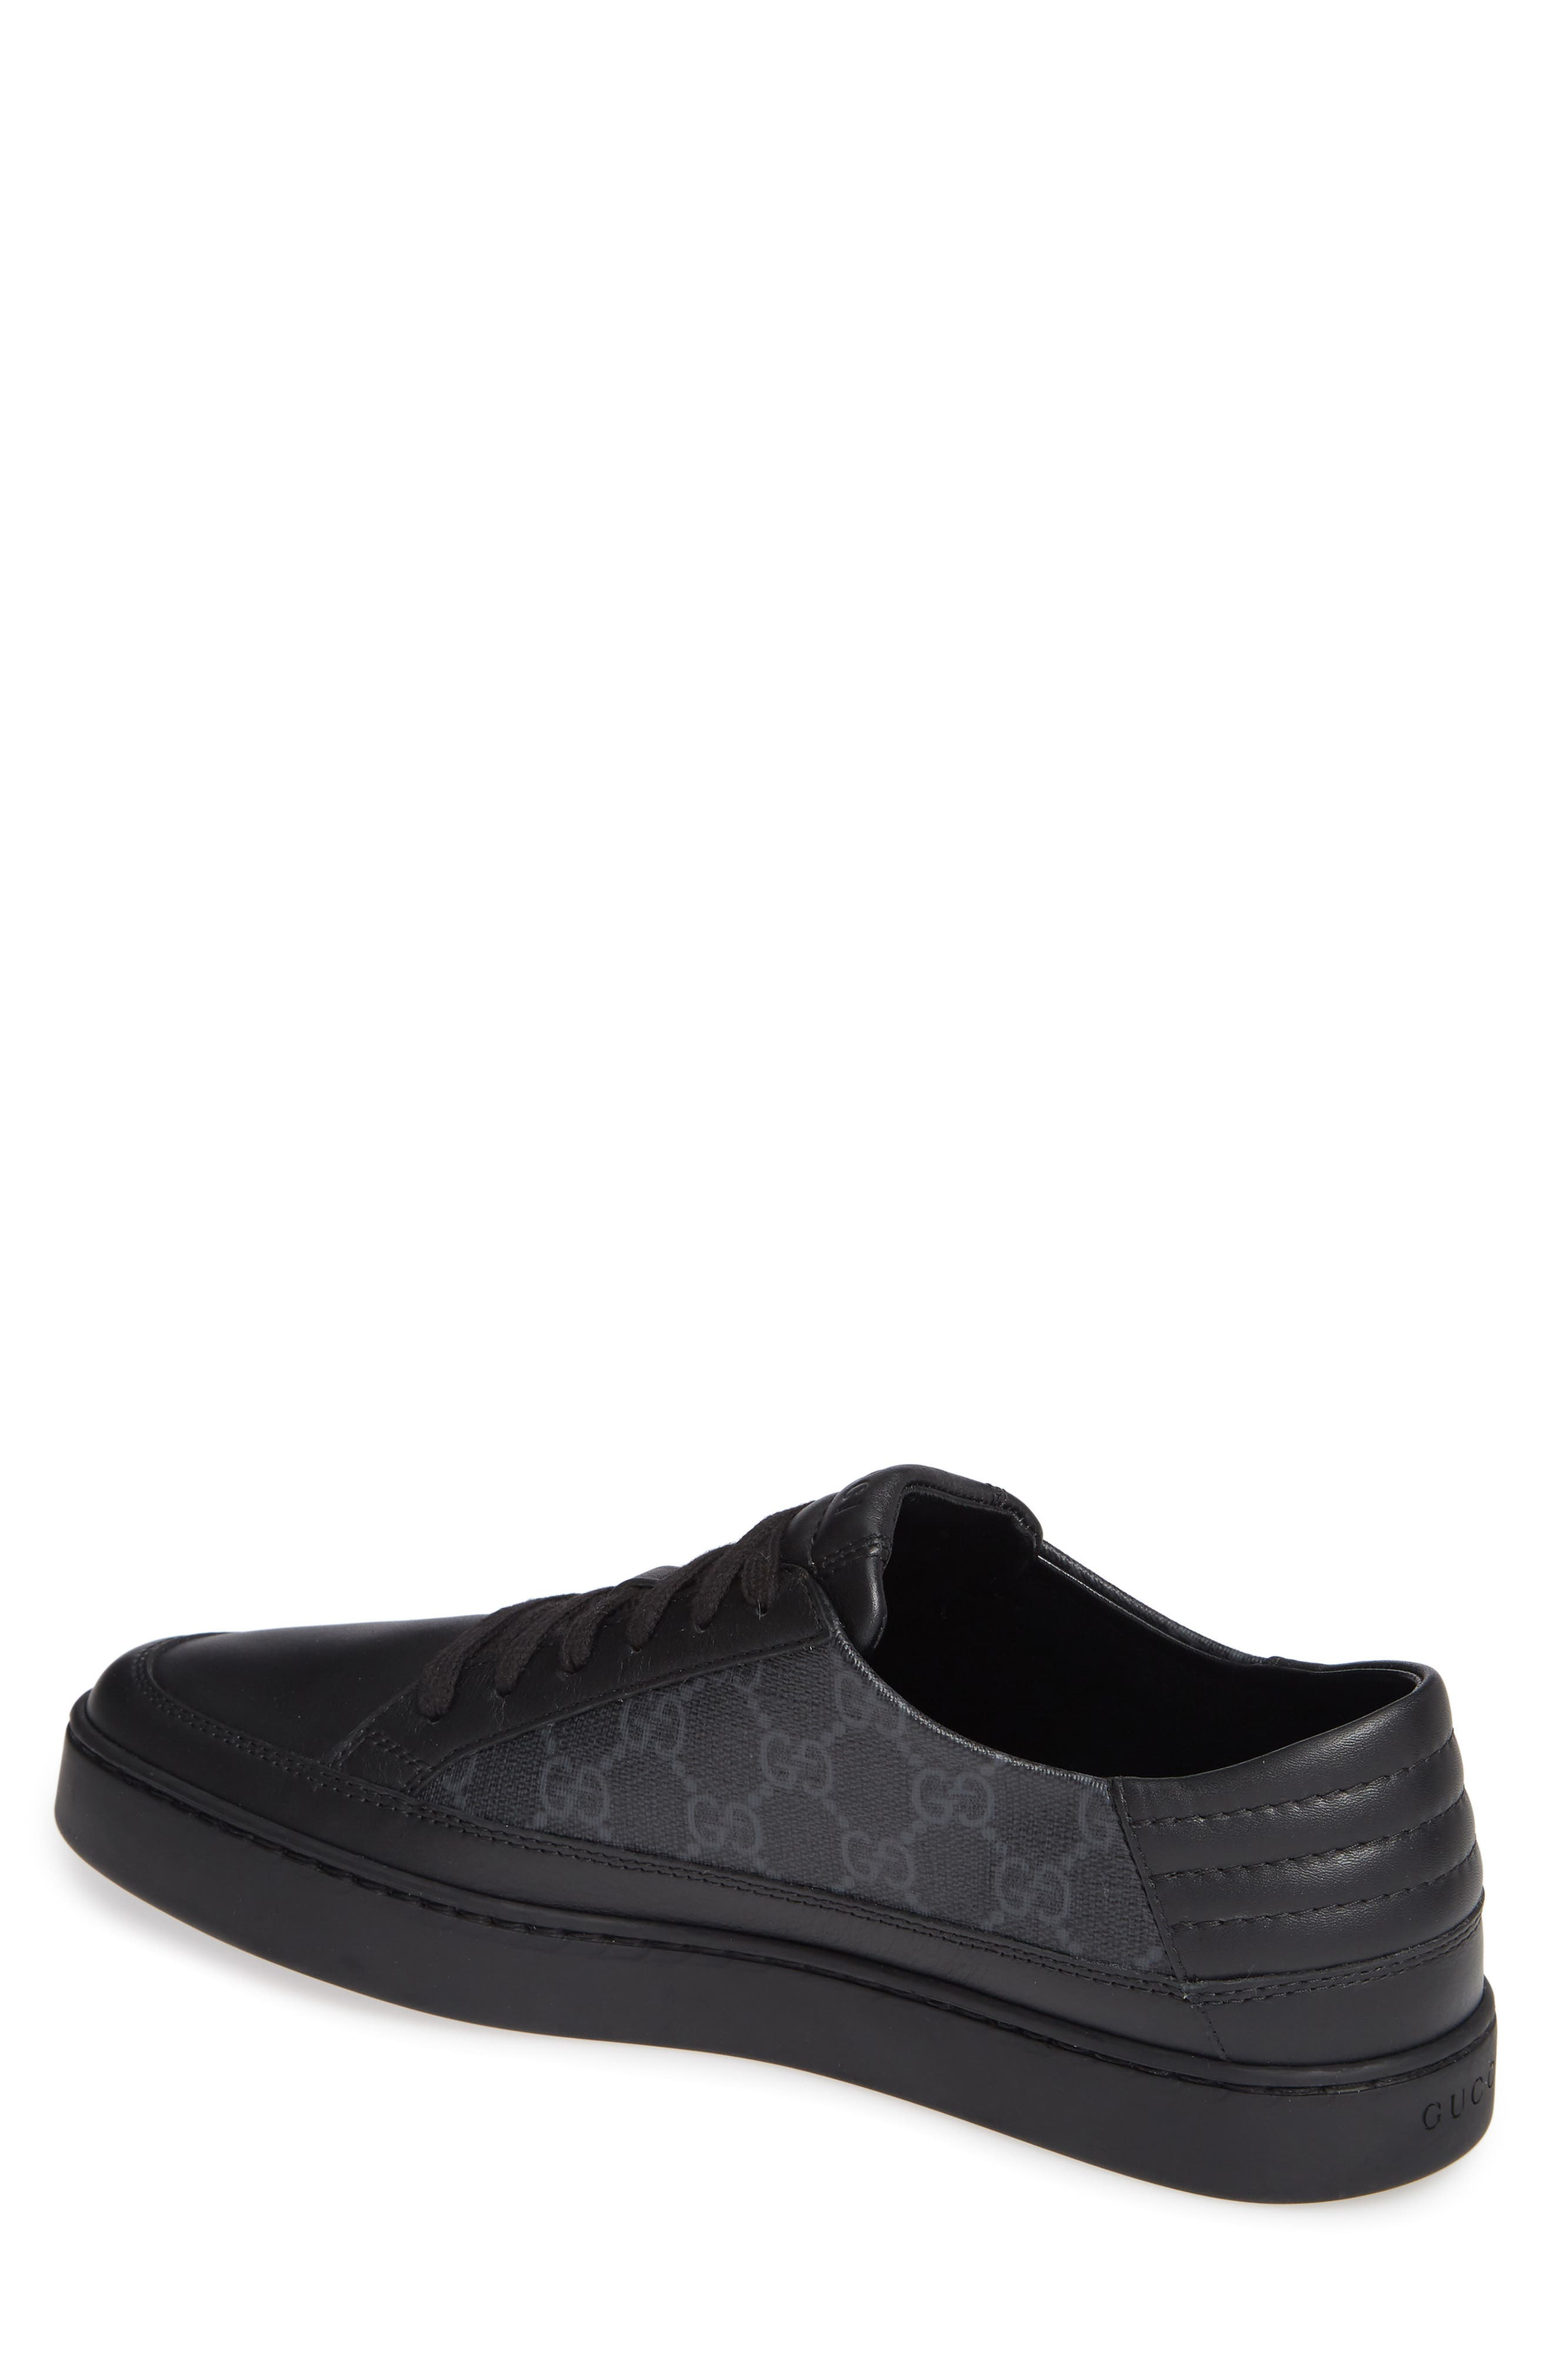 GUCCI, 'Common' Low-Top Sneaker, Alternate thumbnail 2, color, NERO/ BLACK